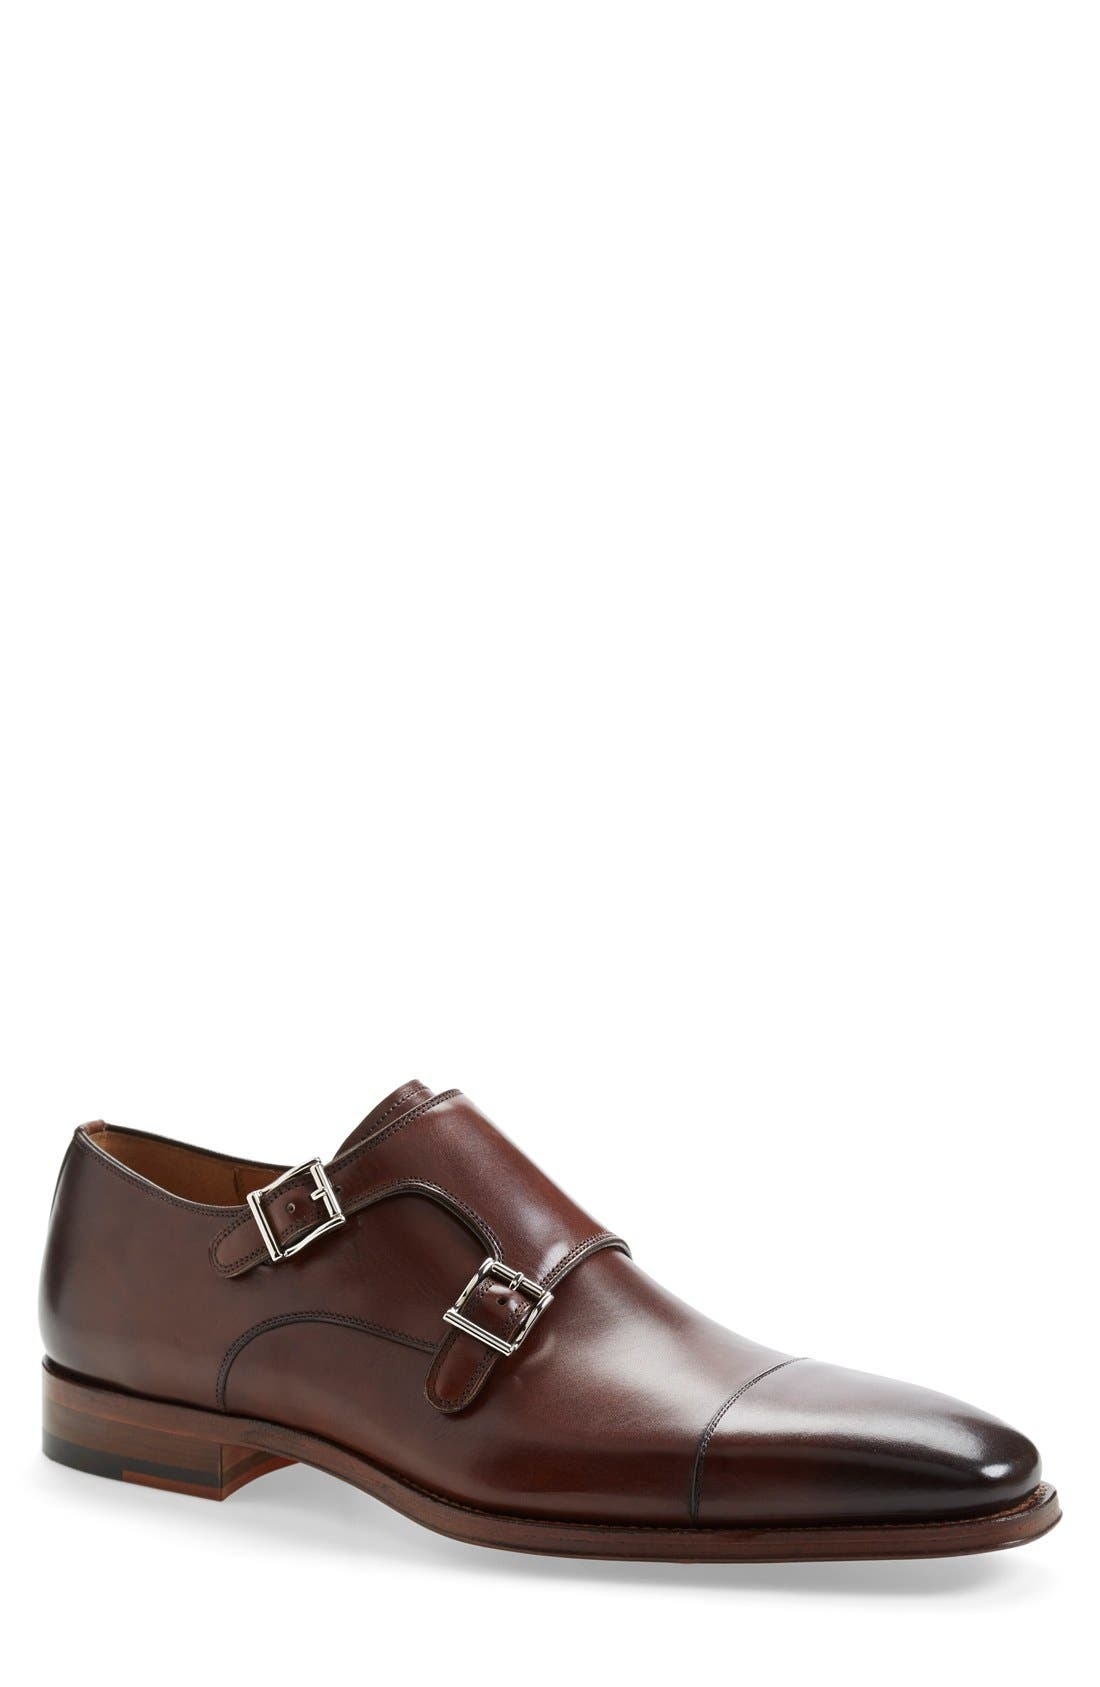 MAGNANNI 'Cortillas' Double Monk Strap Leather Shoe